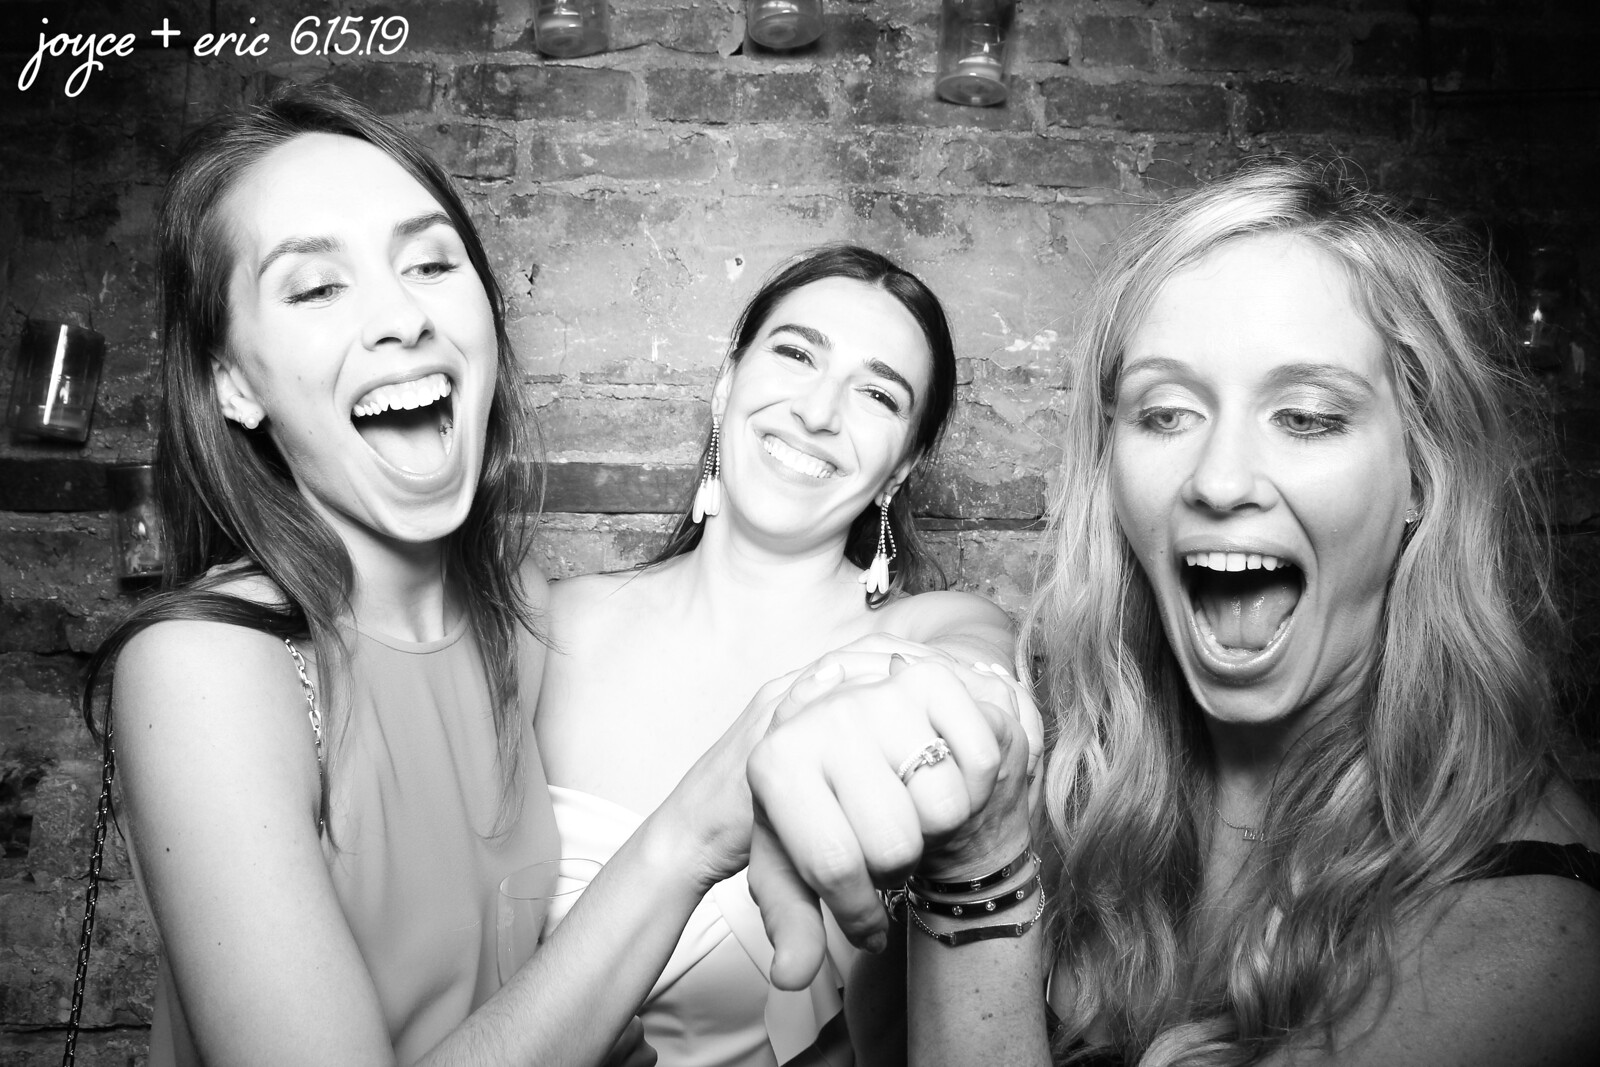 Chicago_Vintage_Wedding_Photobooth_New_Leaf_08.jpg